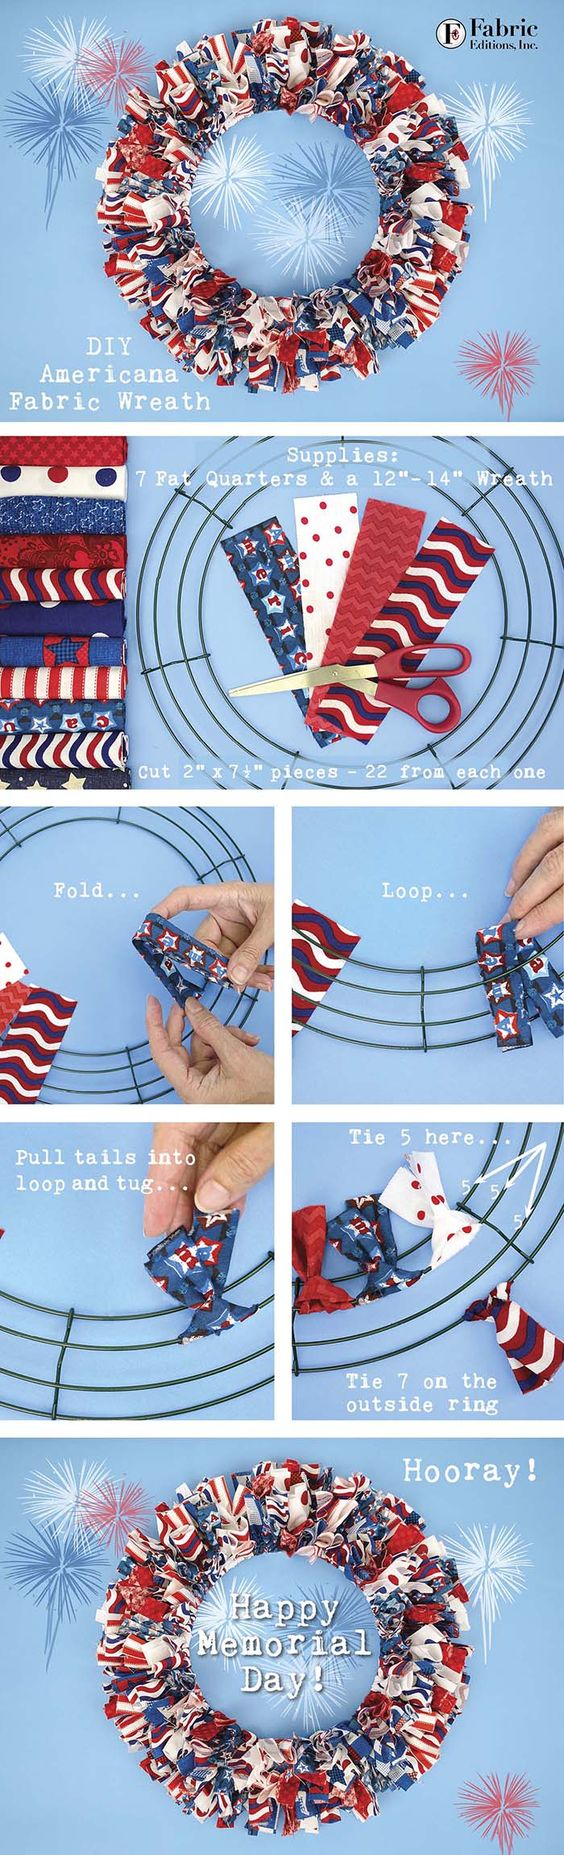 DIY Americana Fabric Wreath.